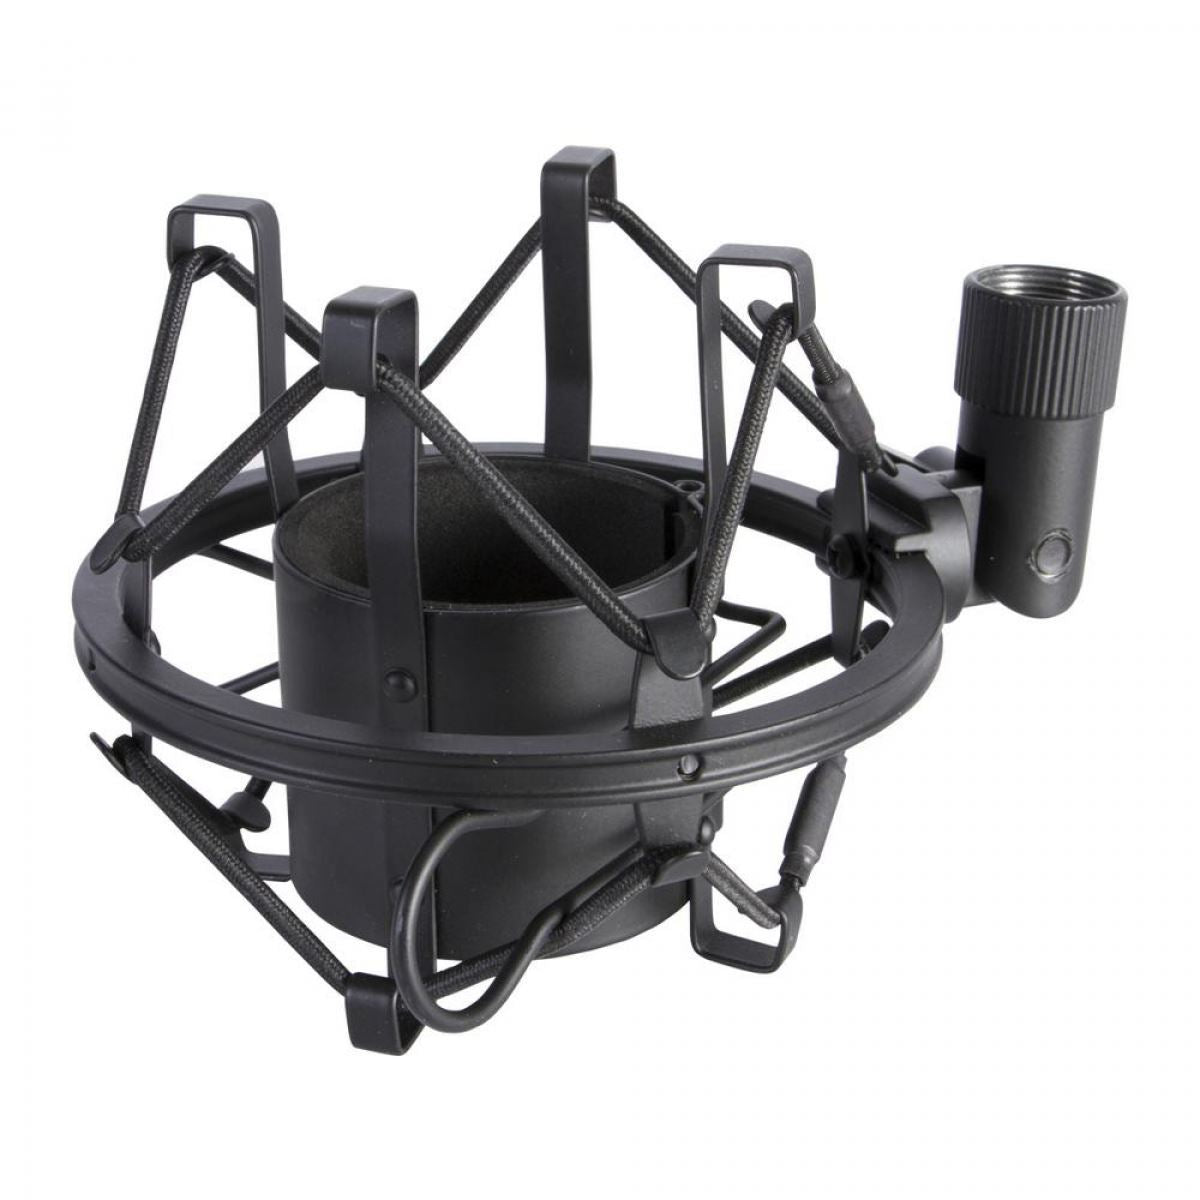 Black Shock Mount for Neumann U89 Microphone